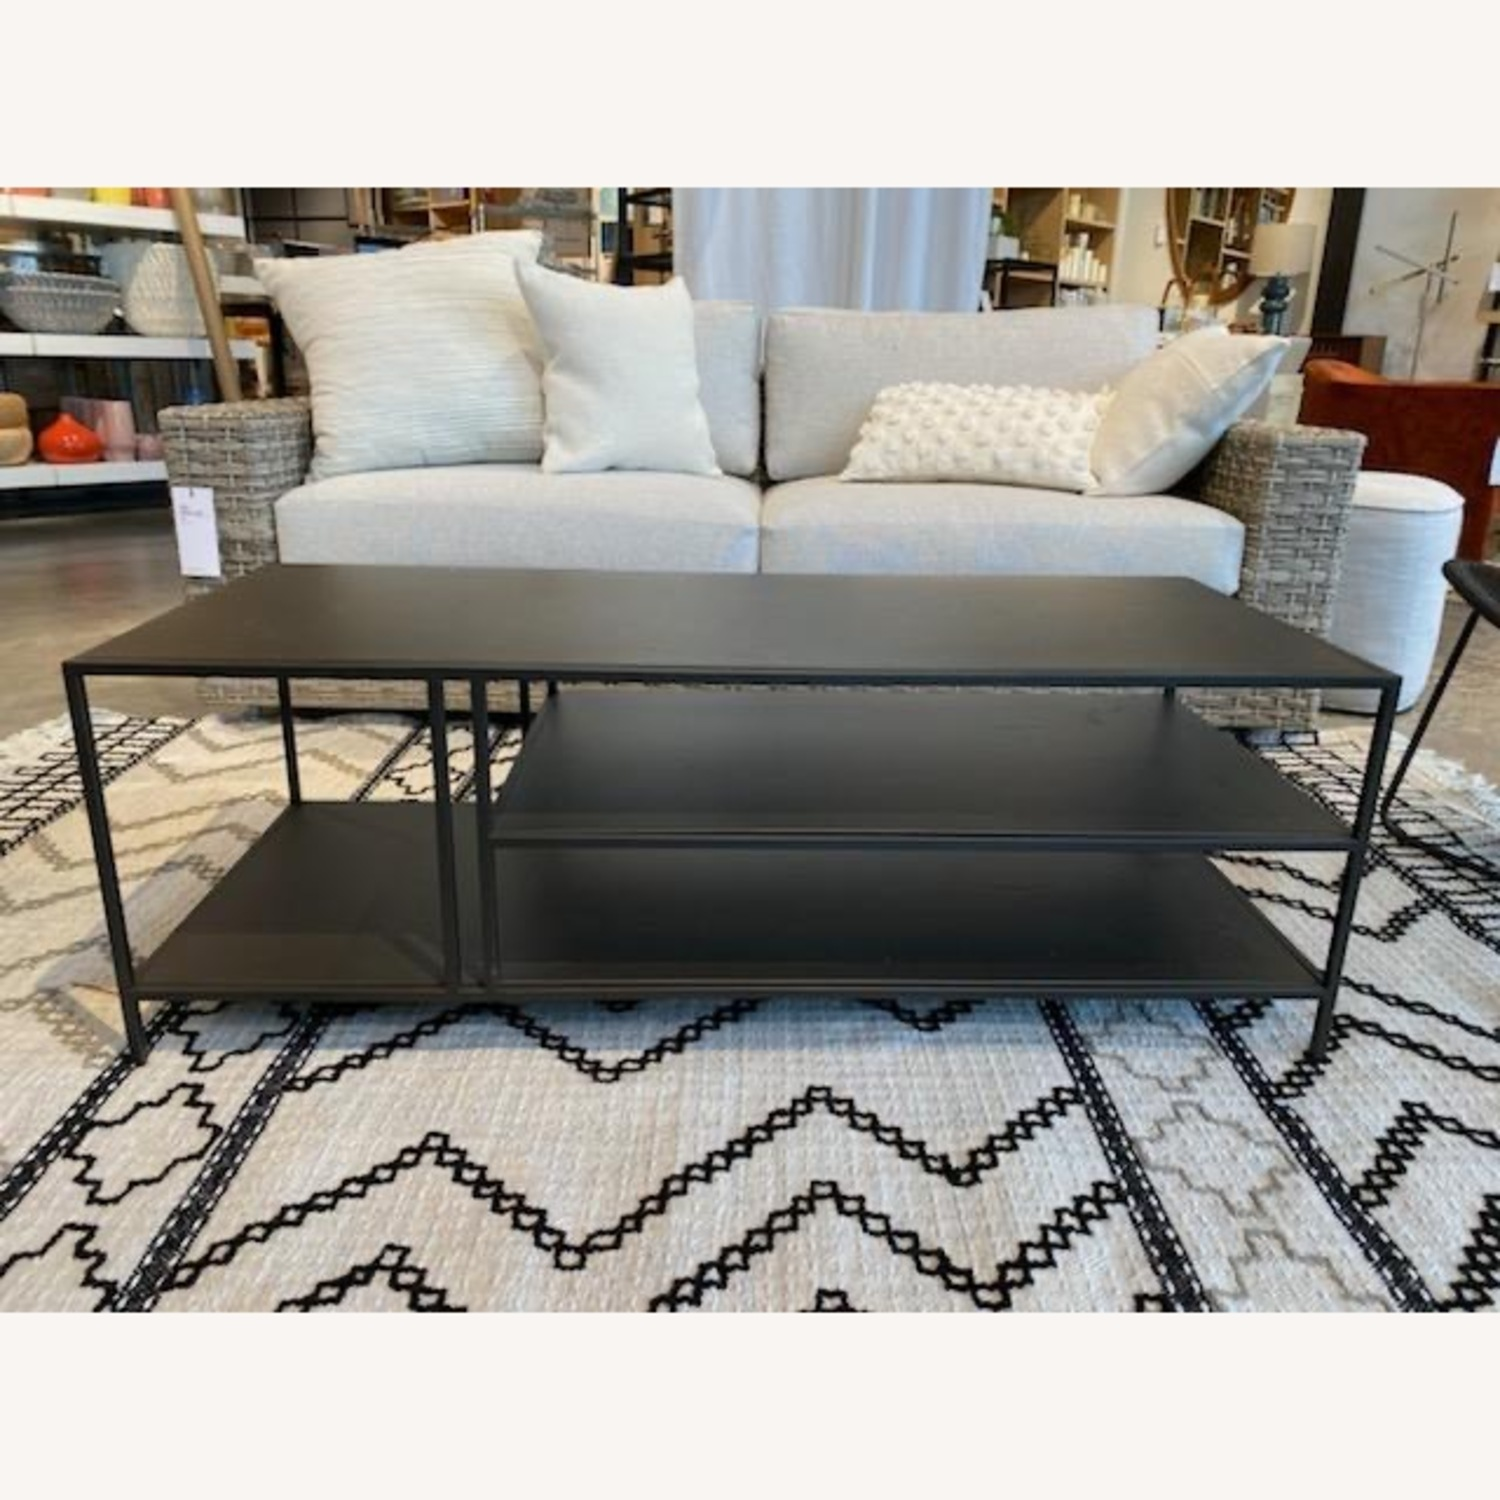 West Elm Profile Coffee Table - image-1